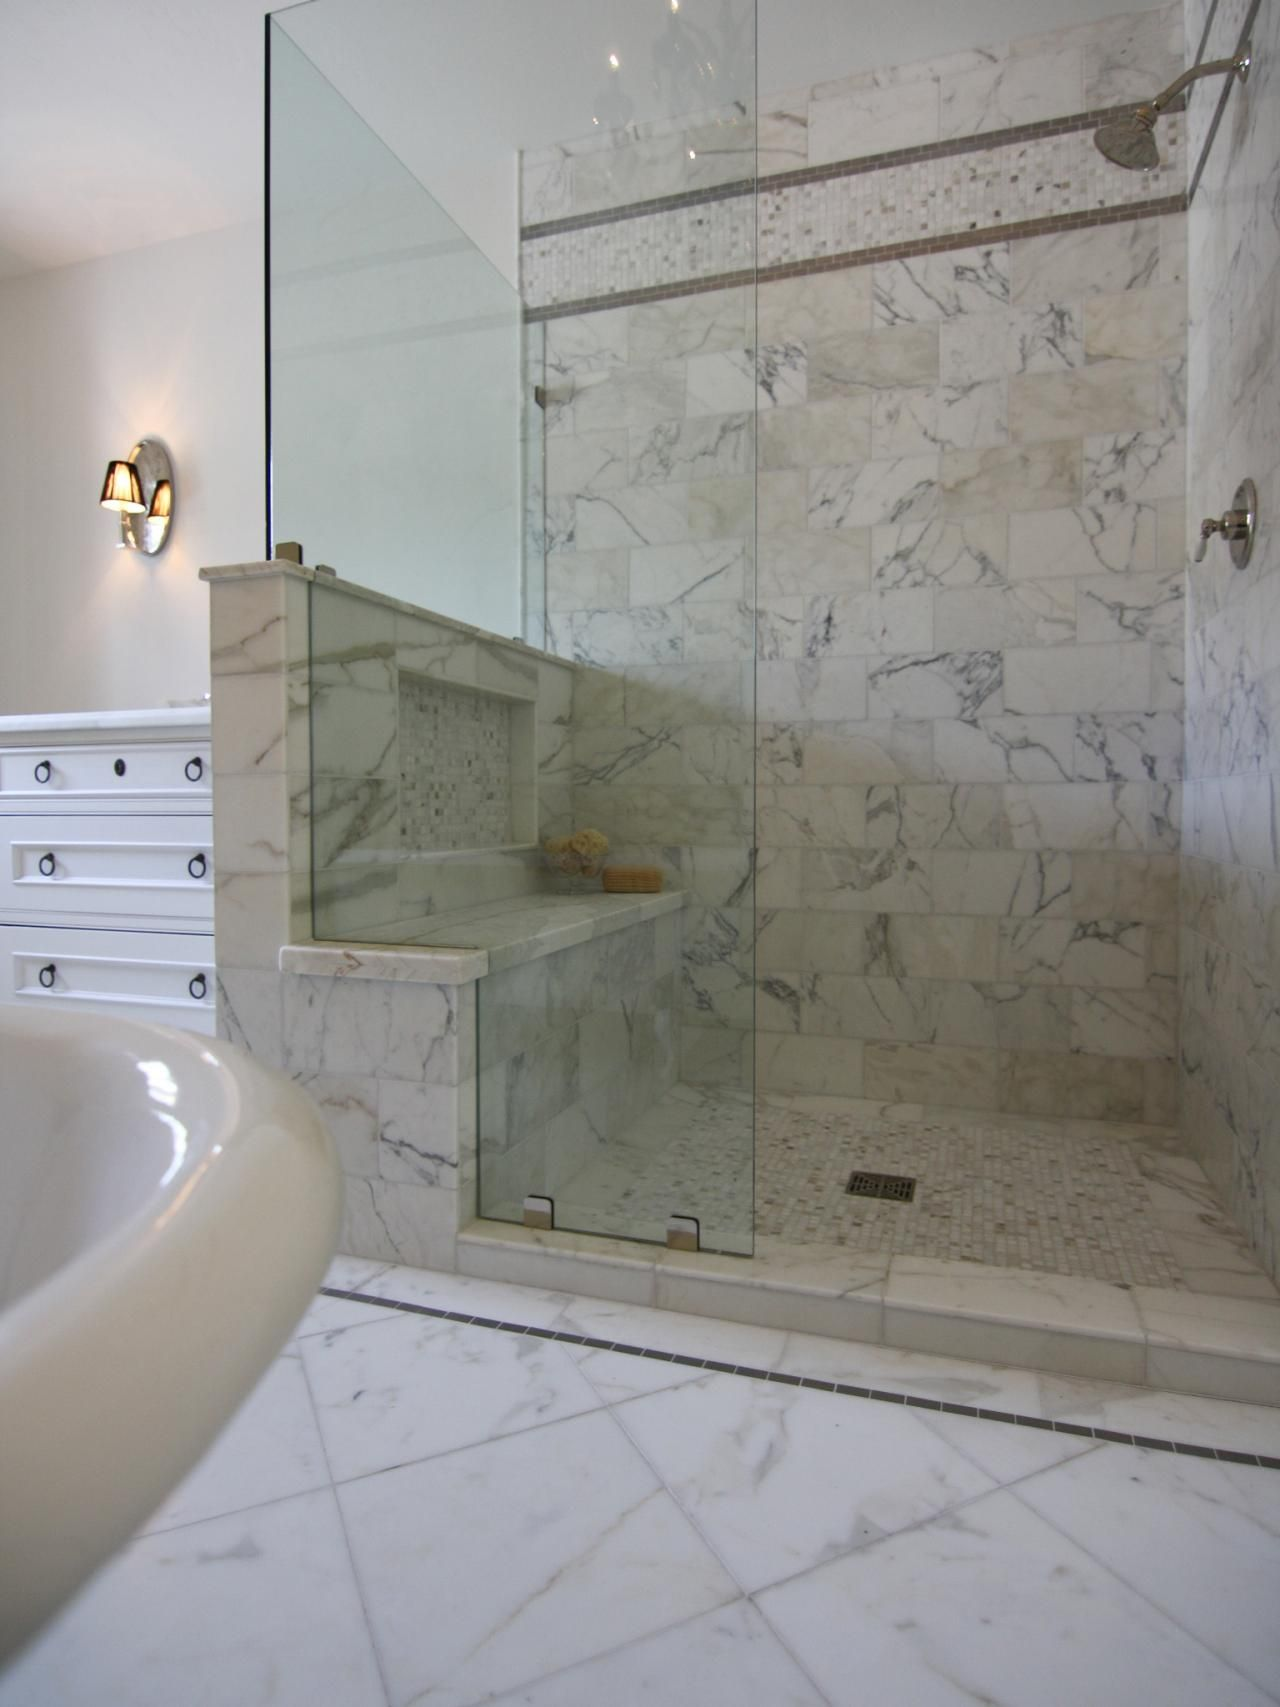 Calacatta marble enrobes this glassenclosed shower to